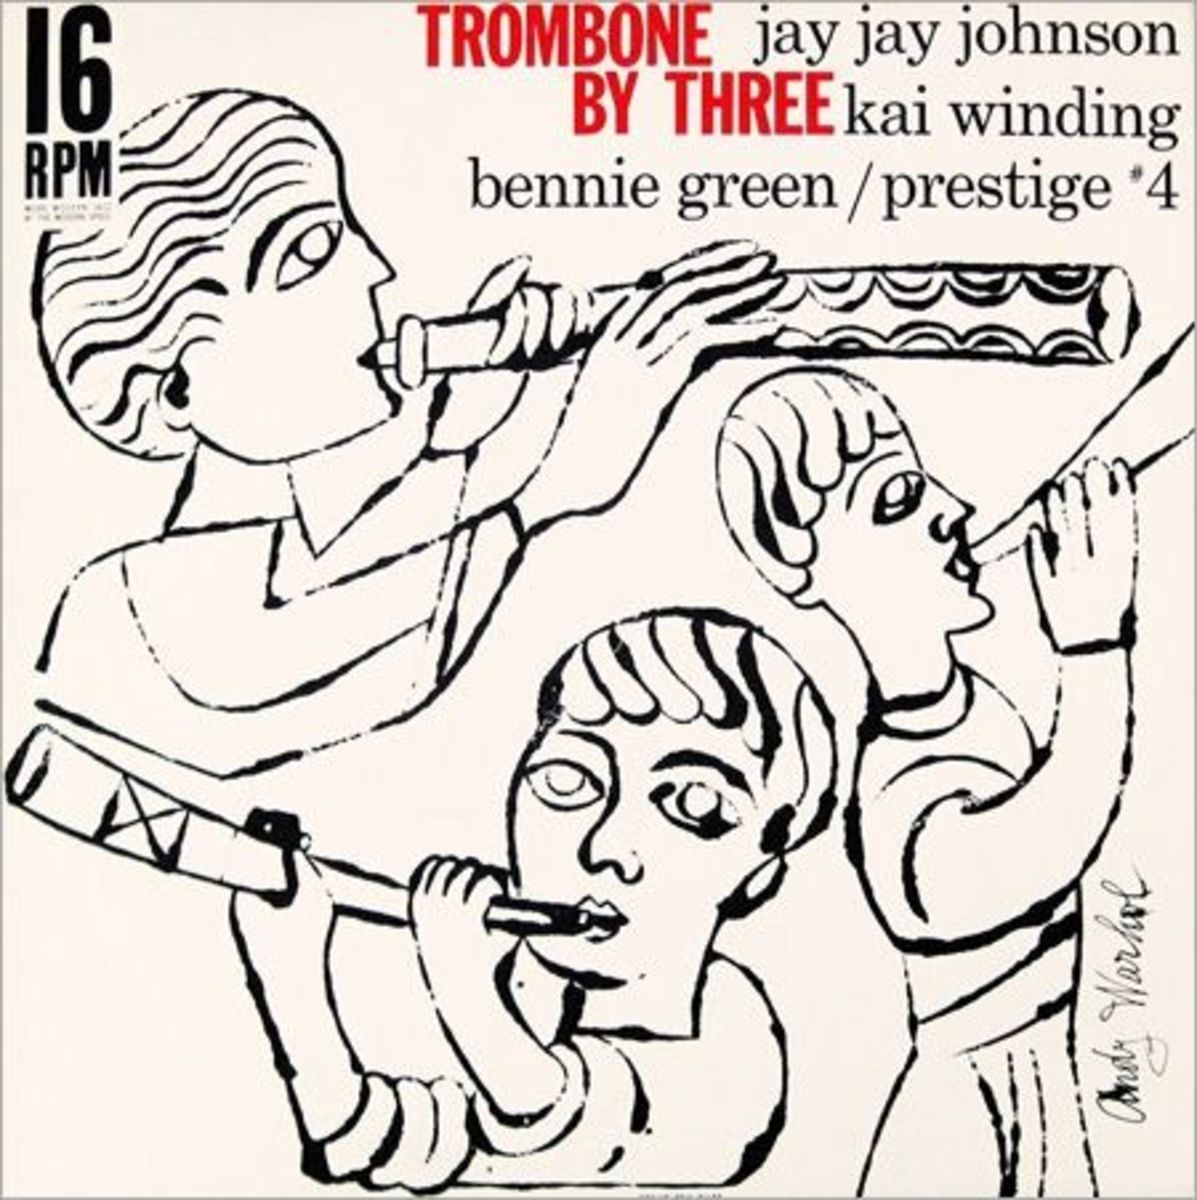 """Jay Jay Johnson, Kai Winding, Bennie Green """"Trombone by Three"""" Prestige Records 4 with Album Cover Art by Andy Warhol"""